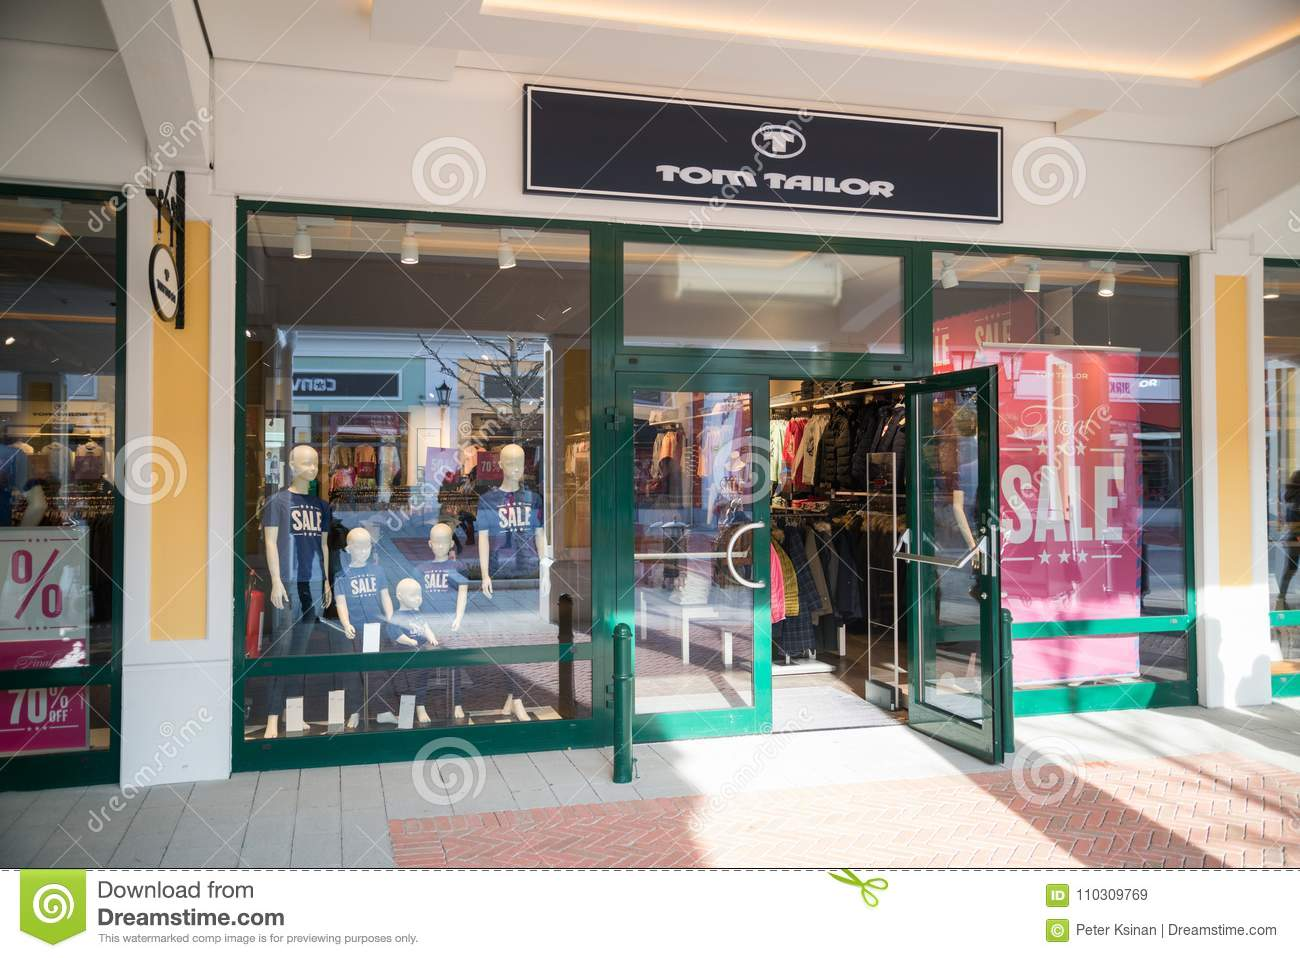 Tom Railor Tom Tailor Store In Parndorf Austria Editorial Stock Image